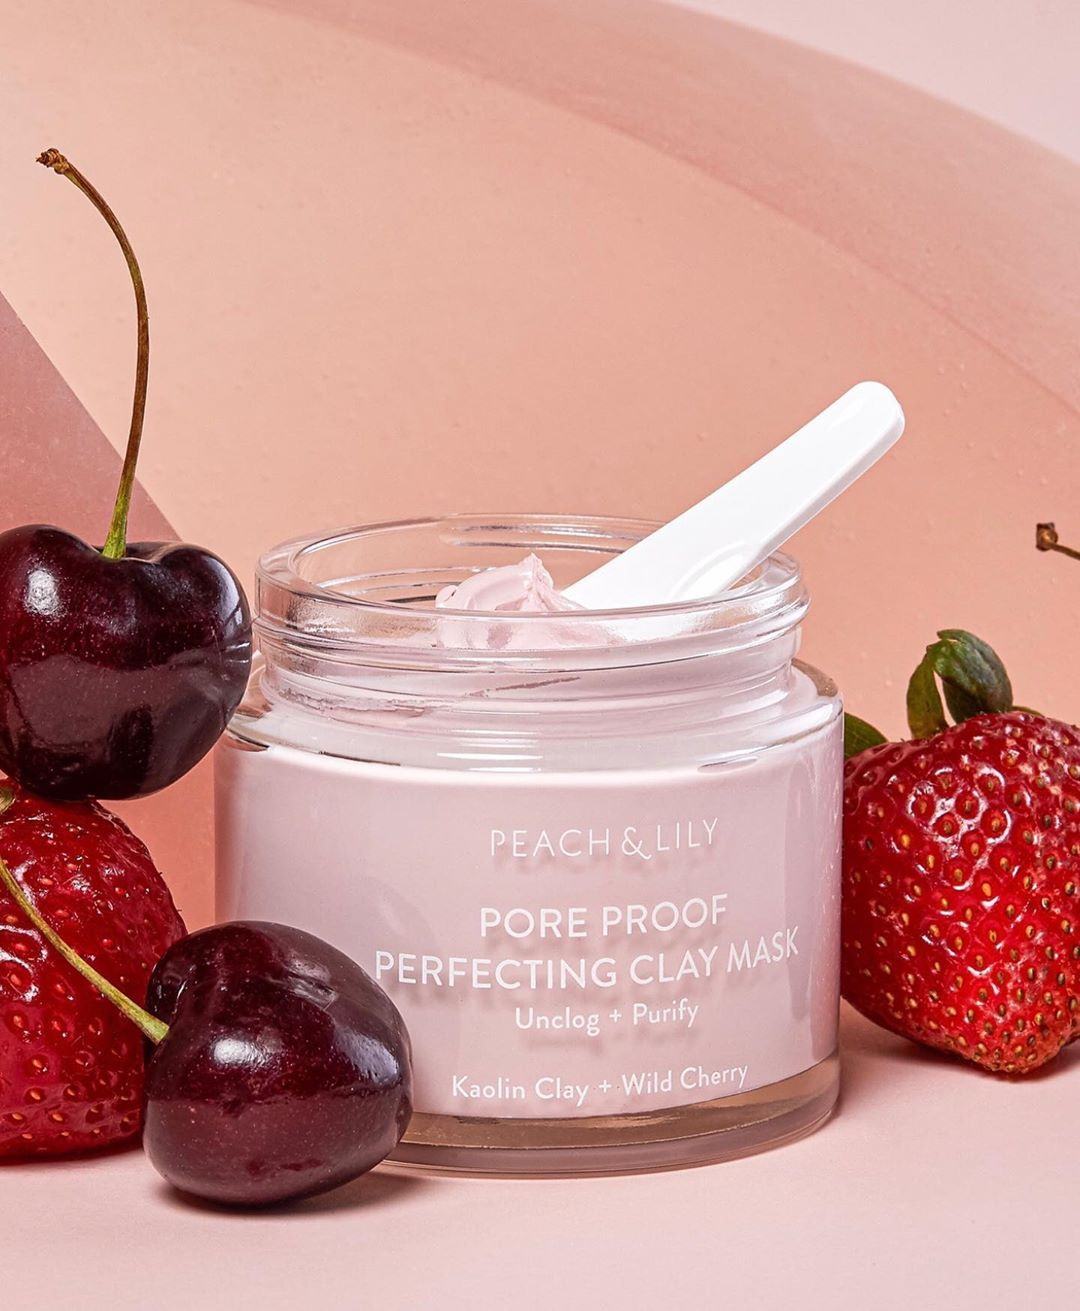 This Cult-Favorite Clay Mask Is the Only Product That Really Unclogs My Pores